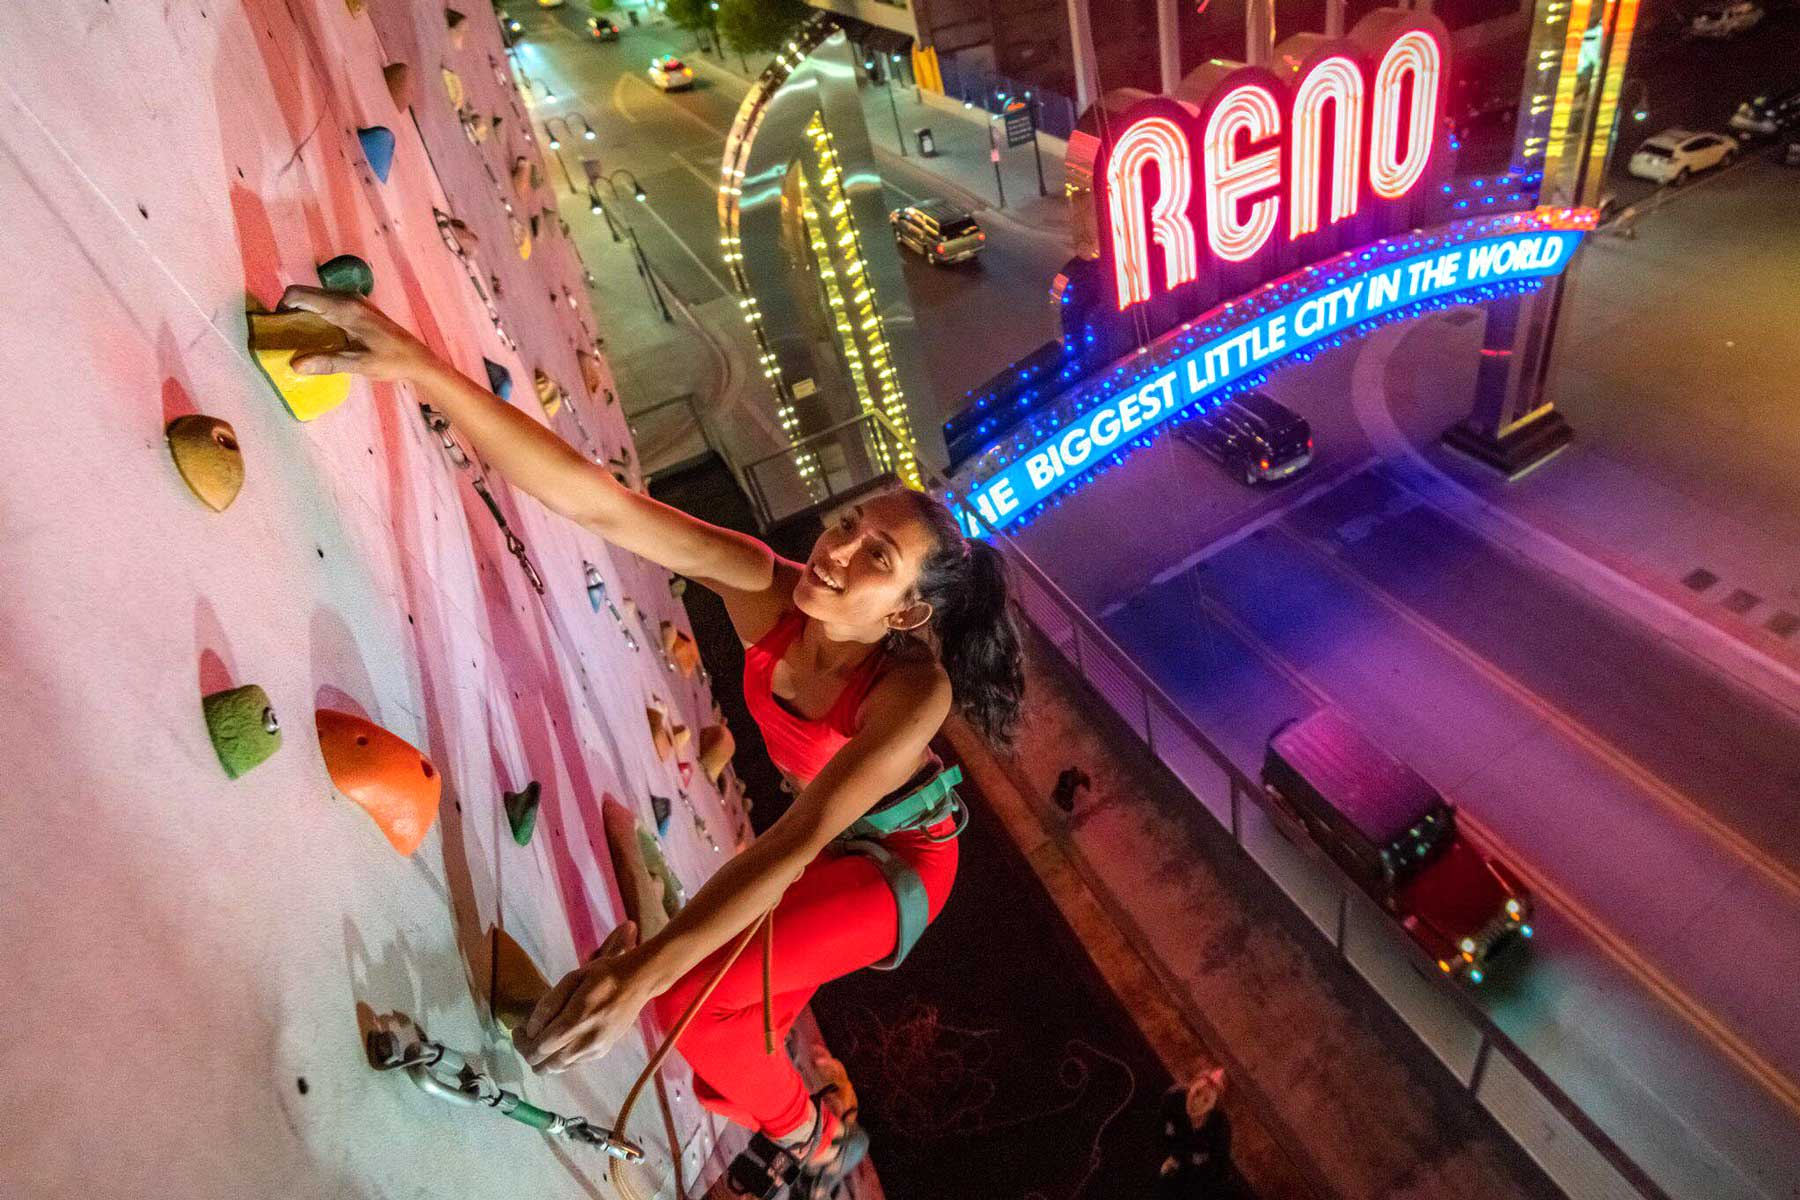 Woman climbing wall of Whitney Peak Hotel at night in Reno, NV